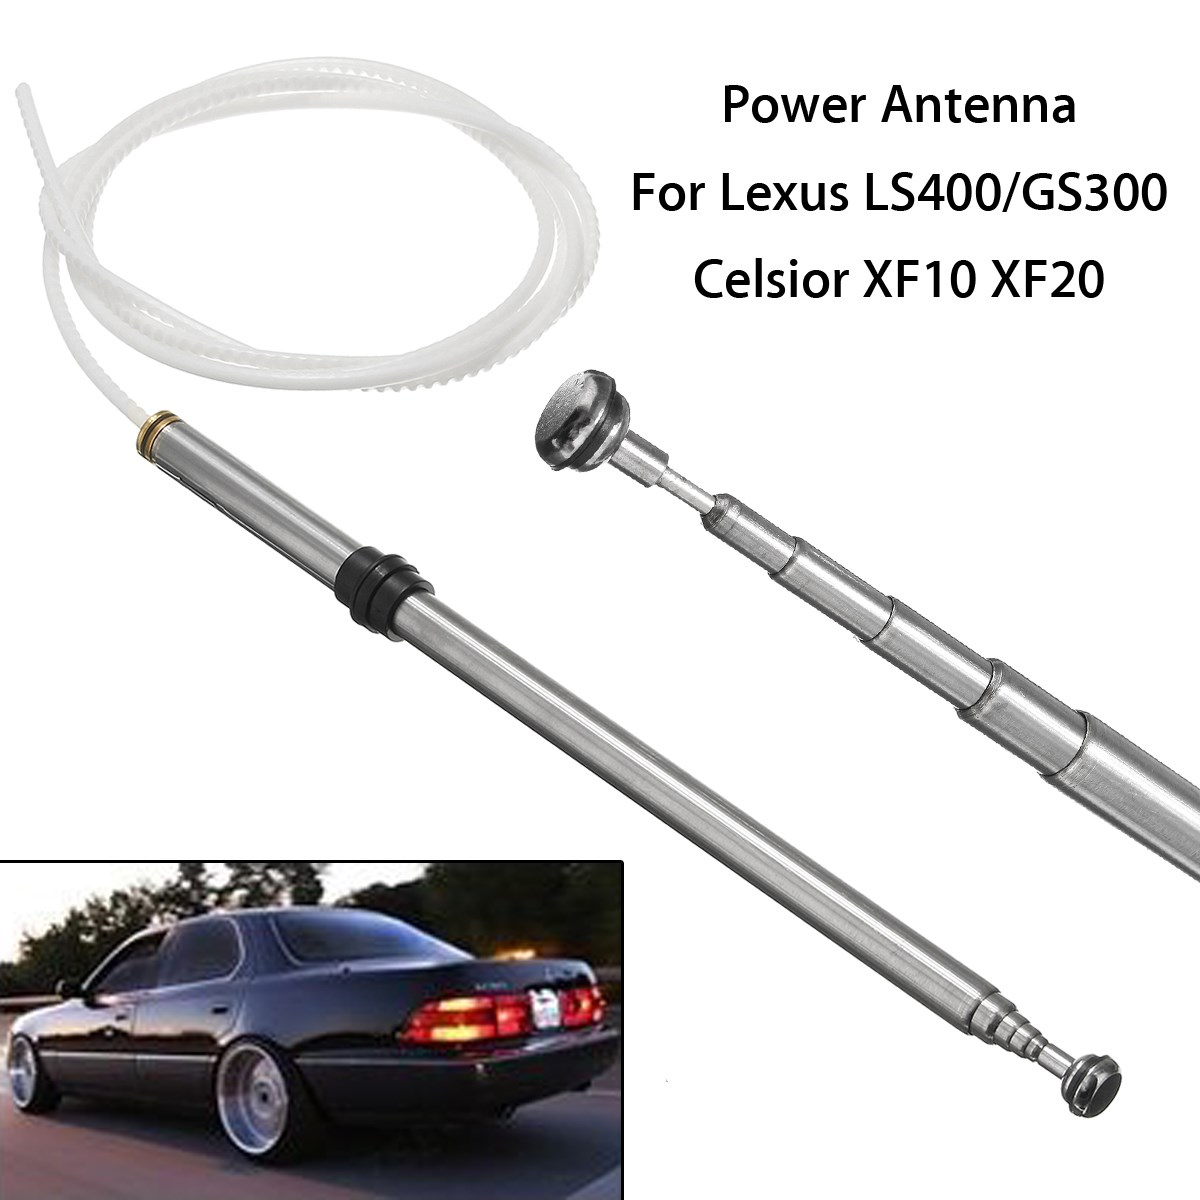 Power Antenna Aerial AM FM Radio Mast Cable For Lexus/LS400/GS300 Celsior XF10 Tooth Core Silver